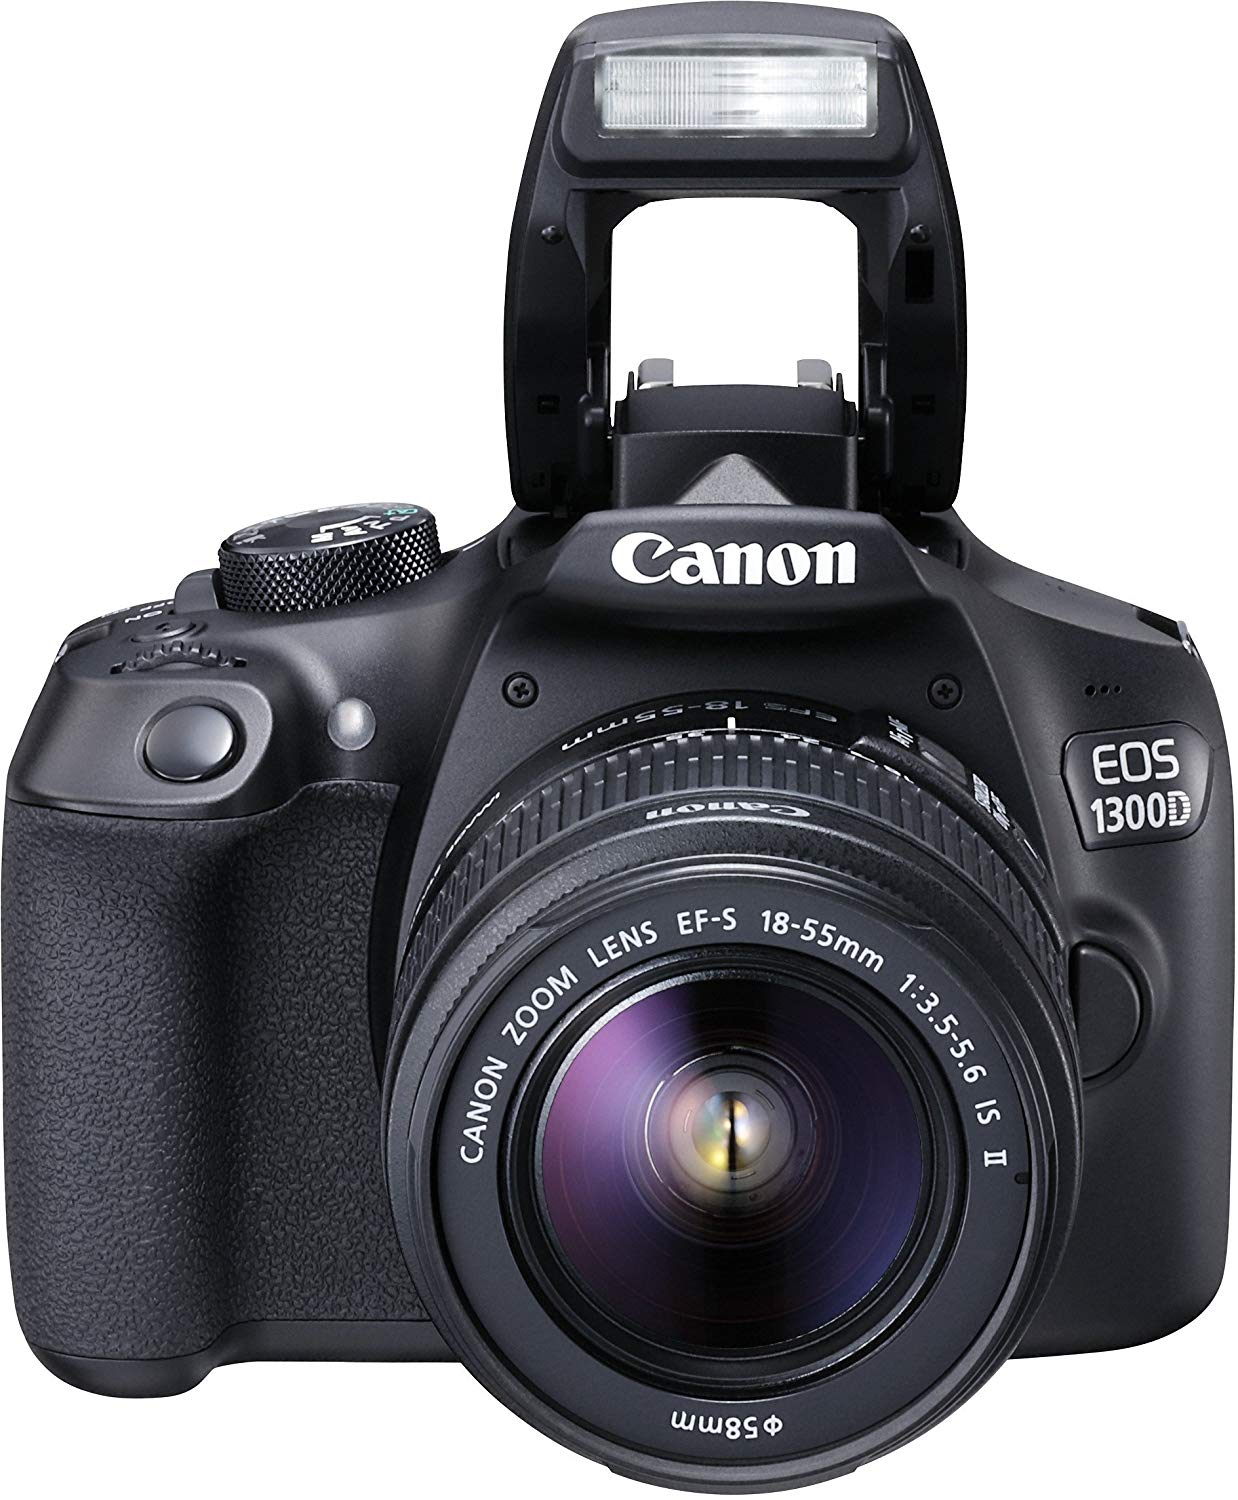 "Canon EOS 1300D - Cámara réflex de 18 Mp (pantalla de 3"", Full HD, 18-55 mm, f/1.5-5.6, NFC, WiFi), color negro - Kit con objetivo EF-S 18-55 mm f/3.5-5.6 IS II (versión importada)"